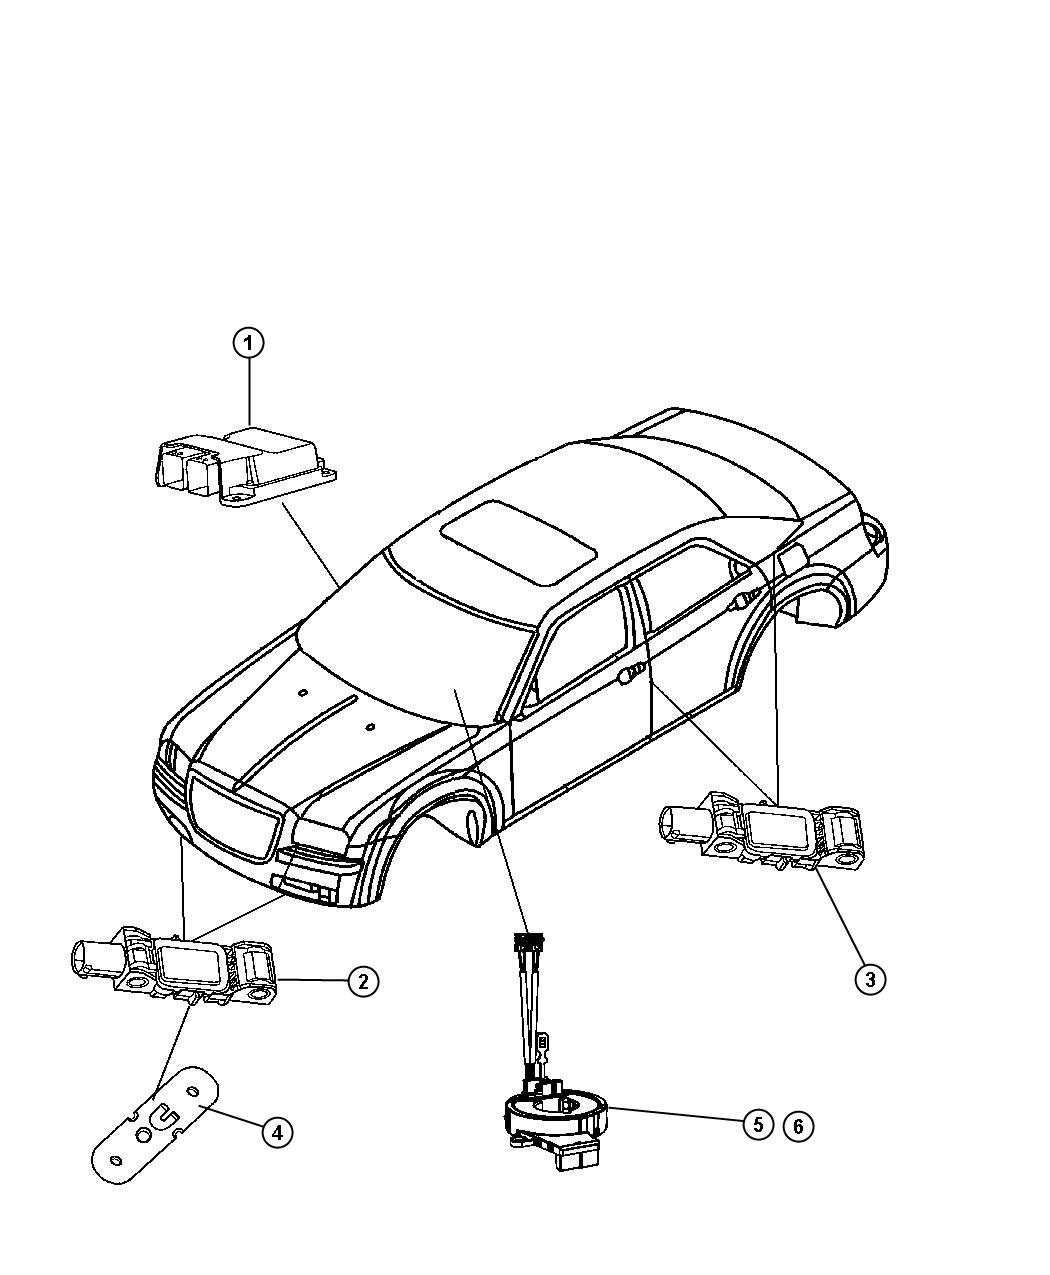 Diagram Air Bag Module, Impact Sensors, and Clockspring. for your Dodge Journey